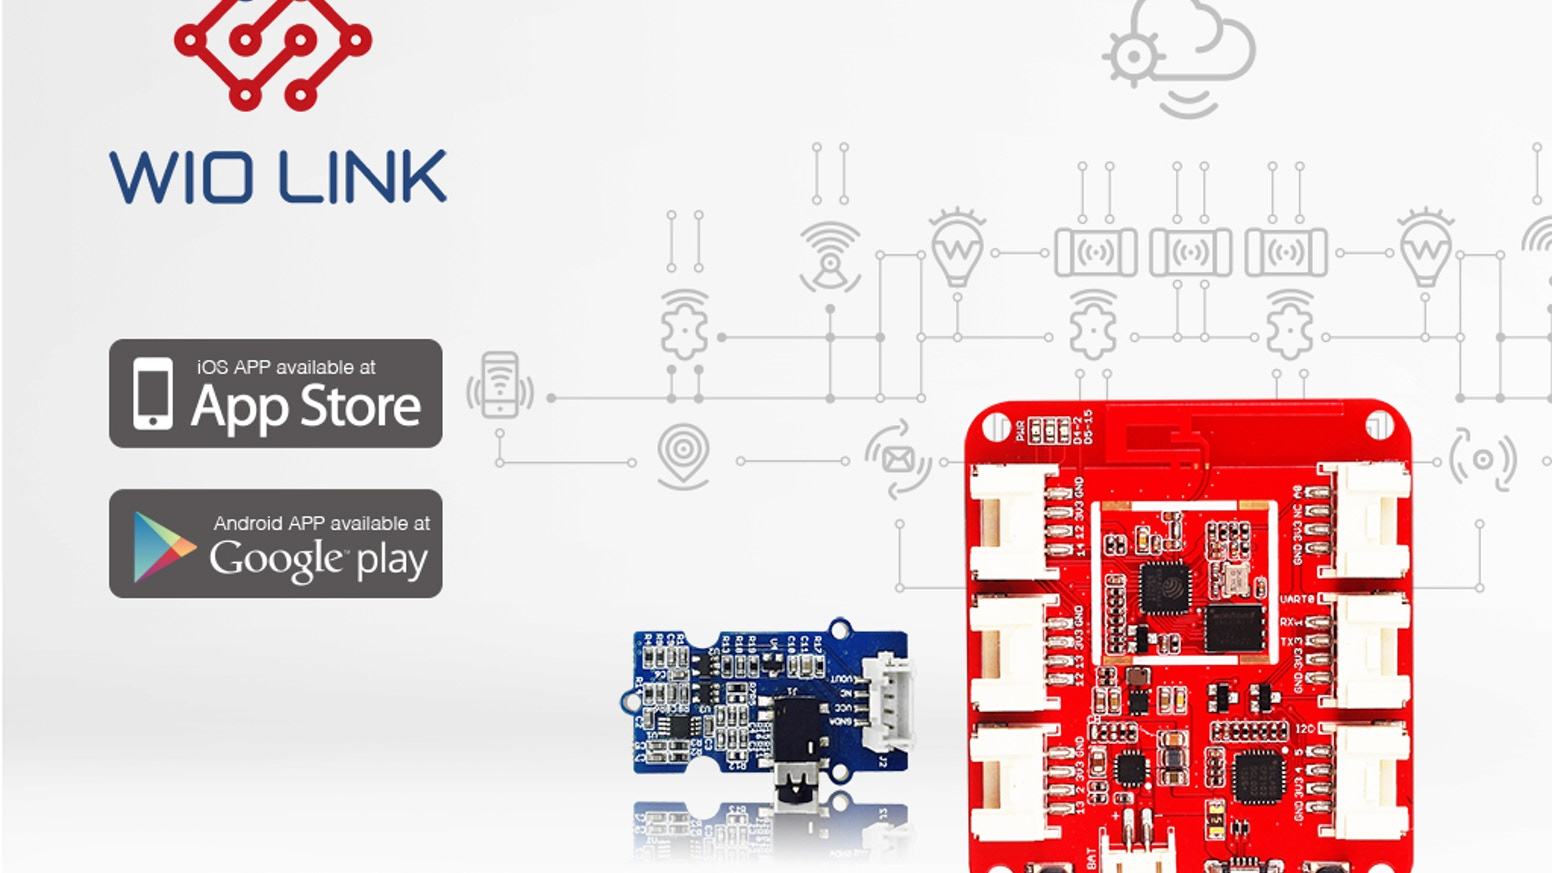 Wio Link 3 Steps 5 Minutes Build Your Iot Applications By Seeed Heterodyne Bat Detector Built With A Similar Circuit To The One Above Esp8266 Based Open Source Wi Fi Solution Simplify Development Virtualizing